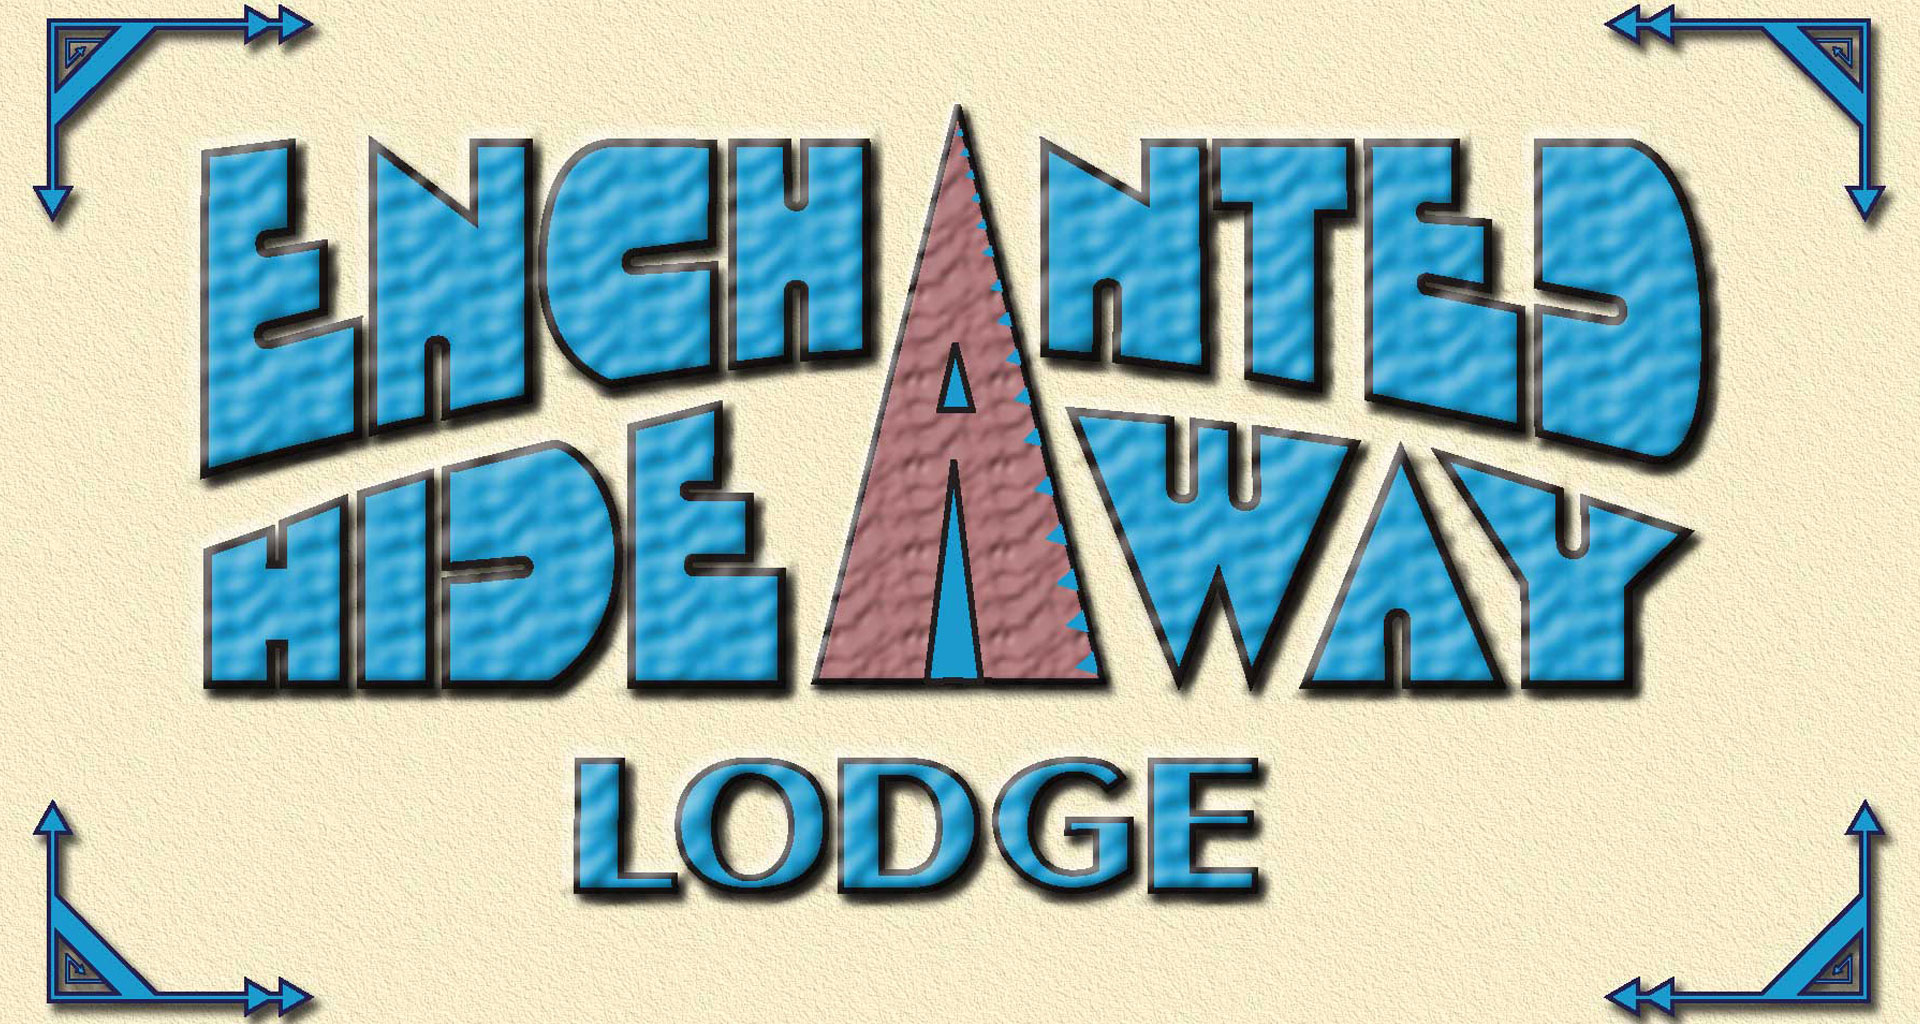 The Enchanted Hideaway Lodge